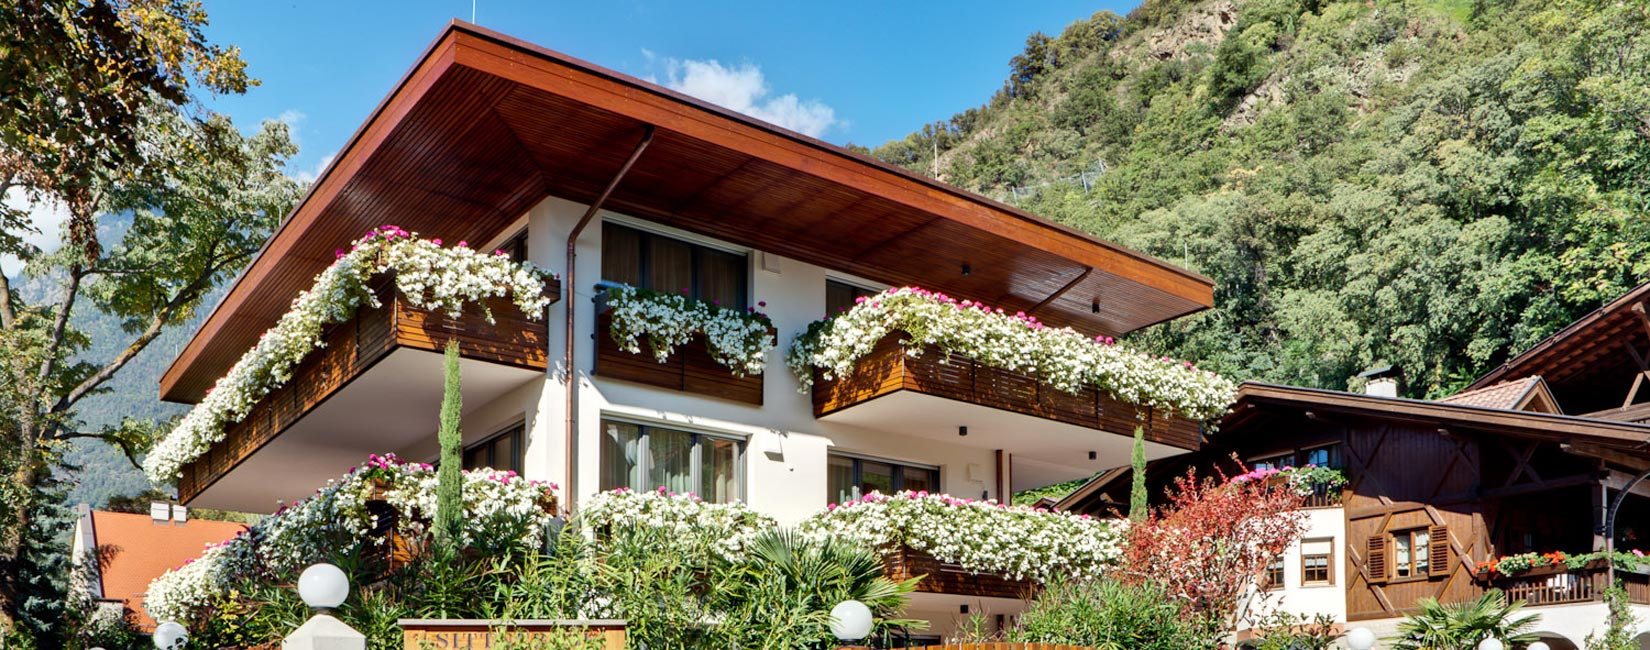 Welcome to our new Residence in Merano